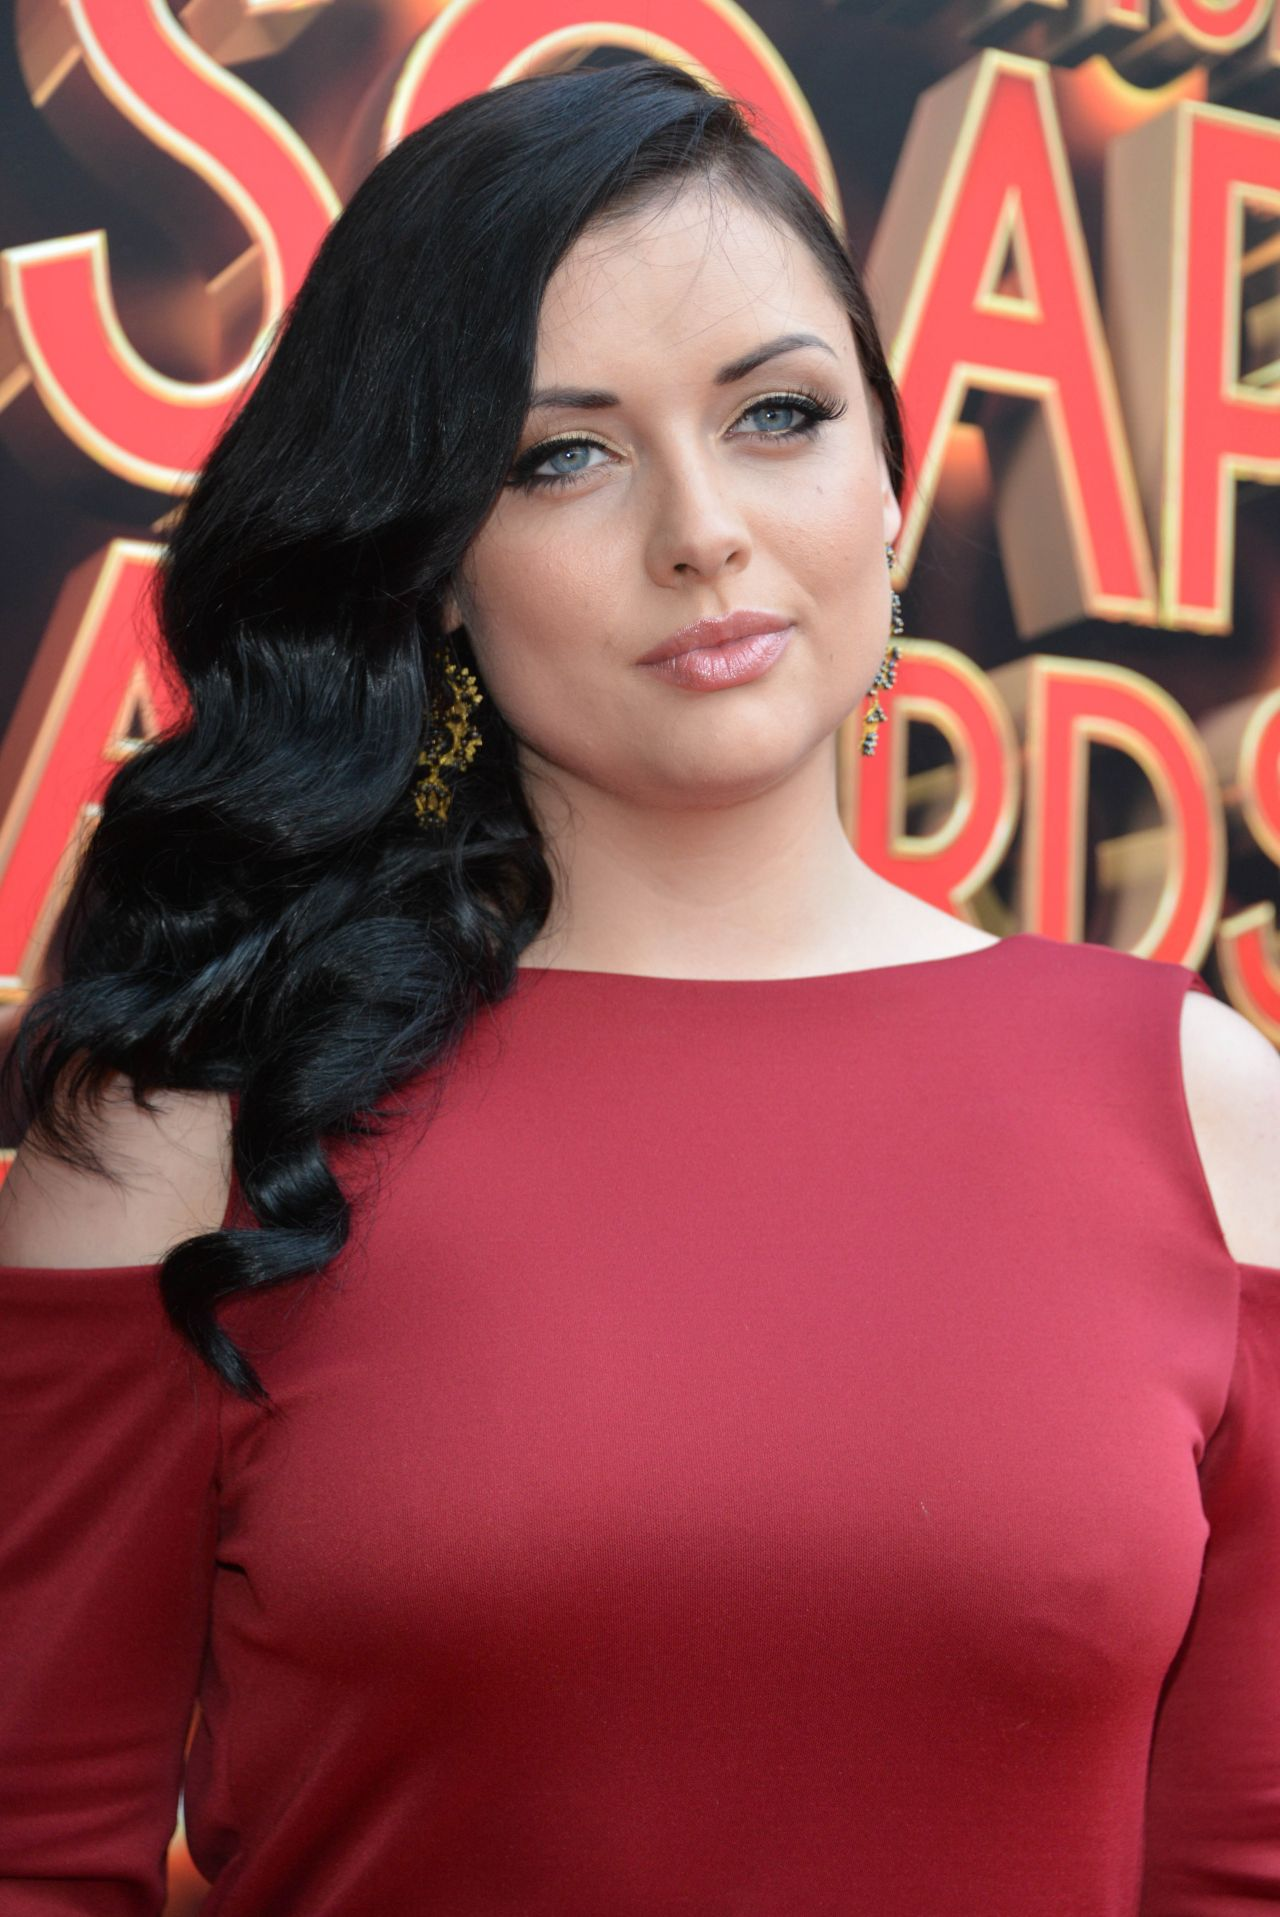 Pics Shona Mcgarty nudes (13 foto and video), Ass, Fappening, Boobs, butt 2018